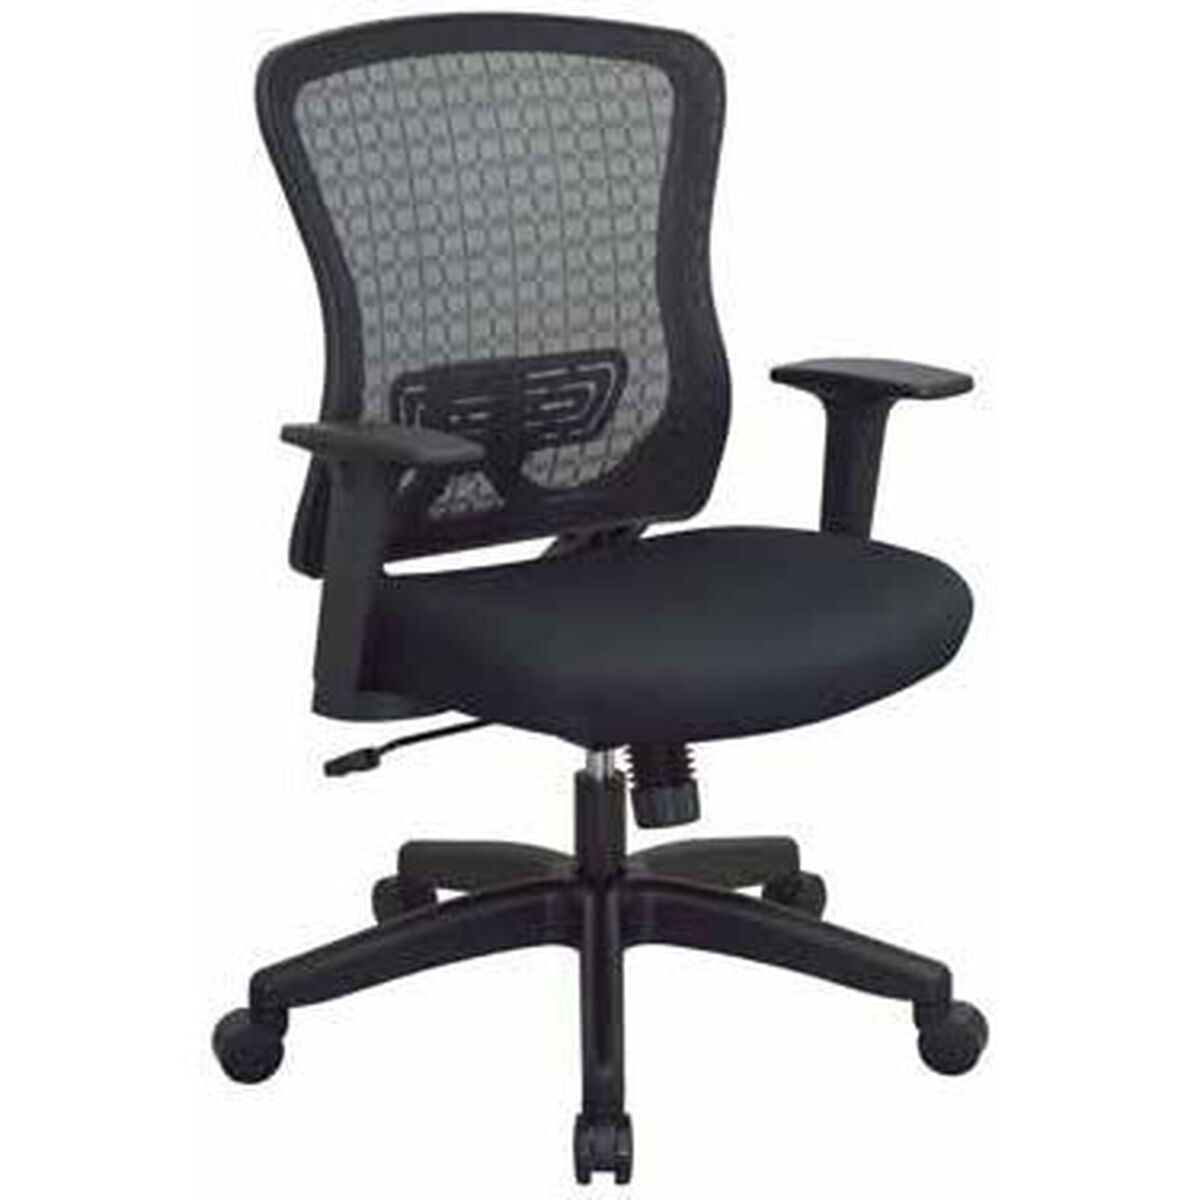 Our E Seating Chx Dark Breathable Mesh Back And Padded Seat Managers Office Chair